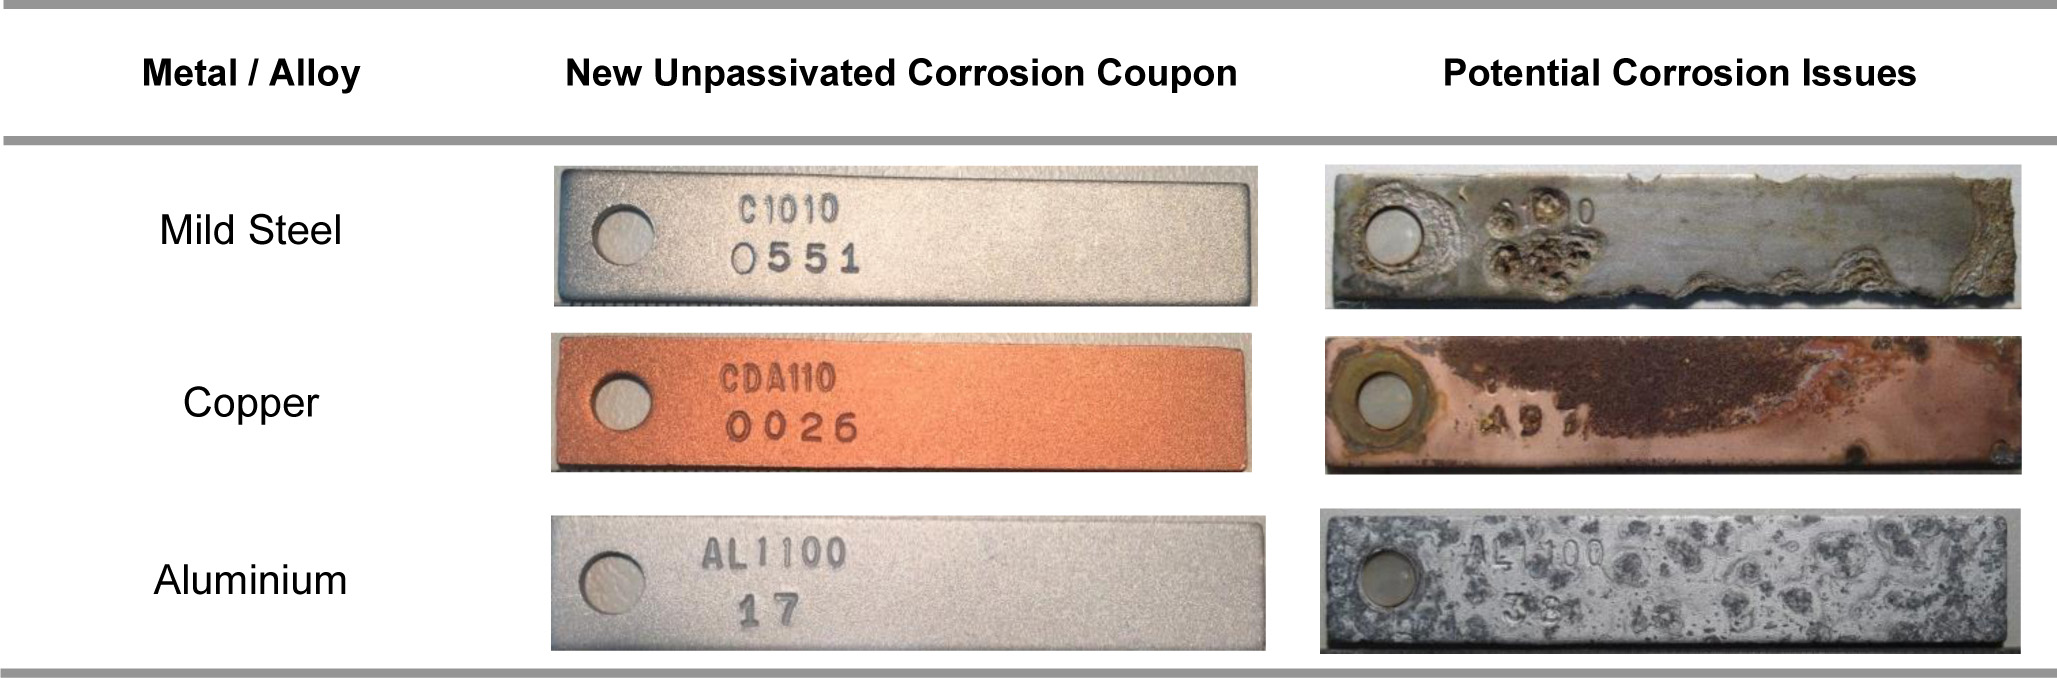 4.5 corrosion coupon table